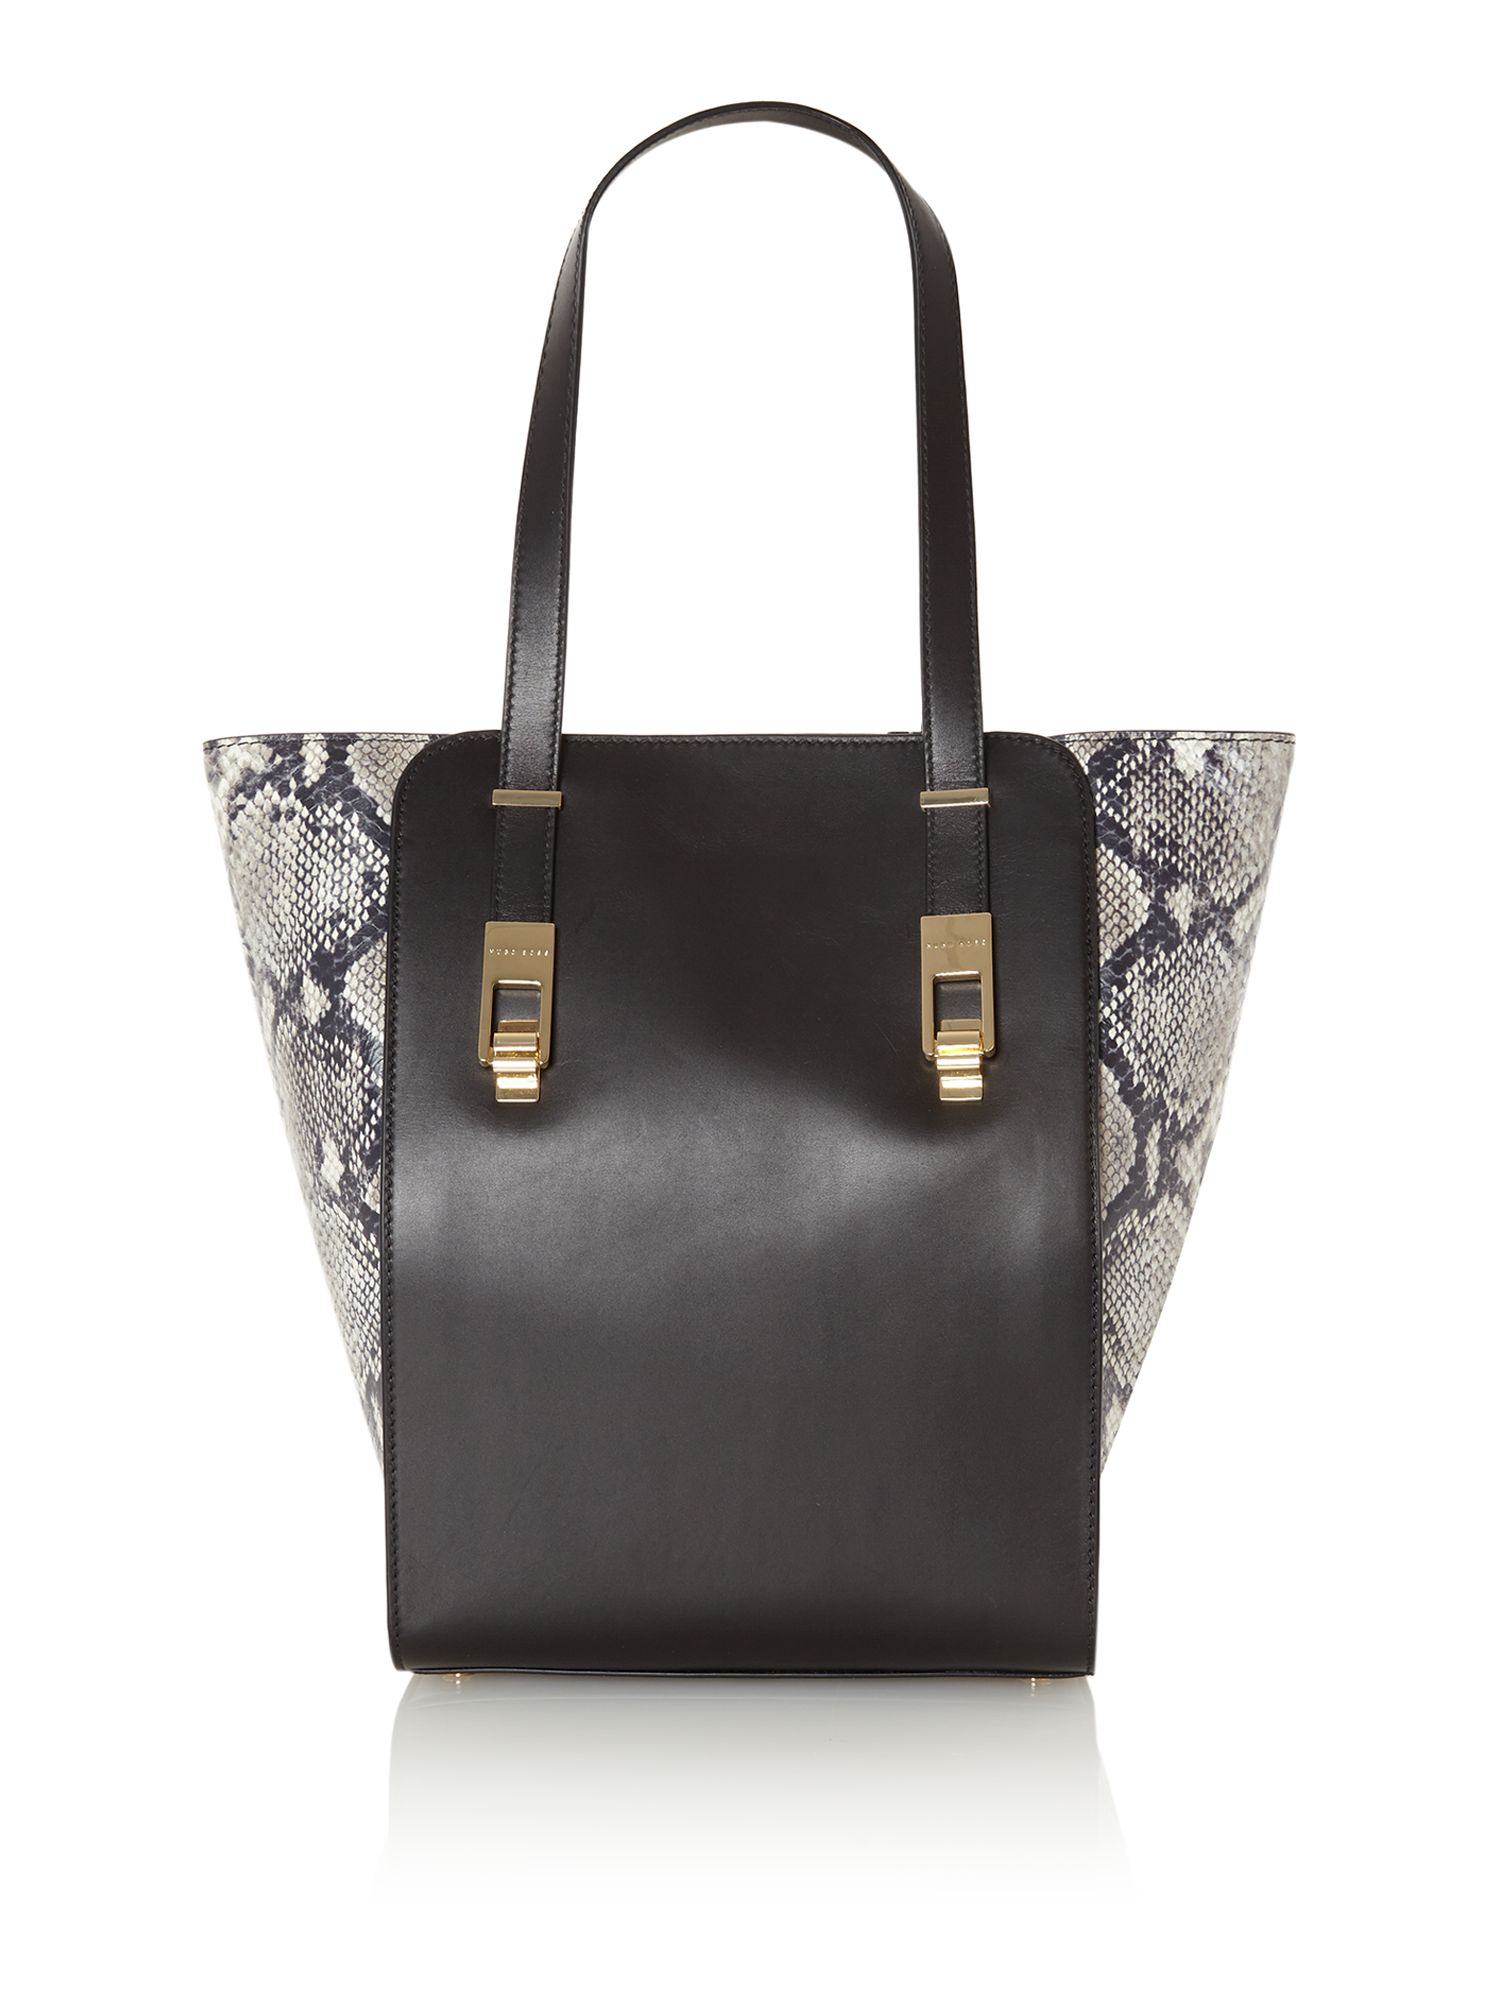 Camely black snake tote bag